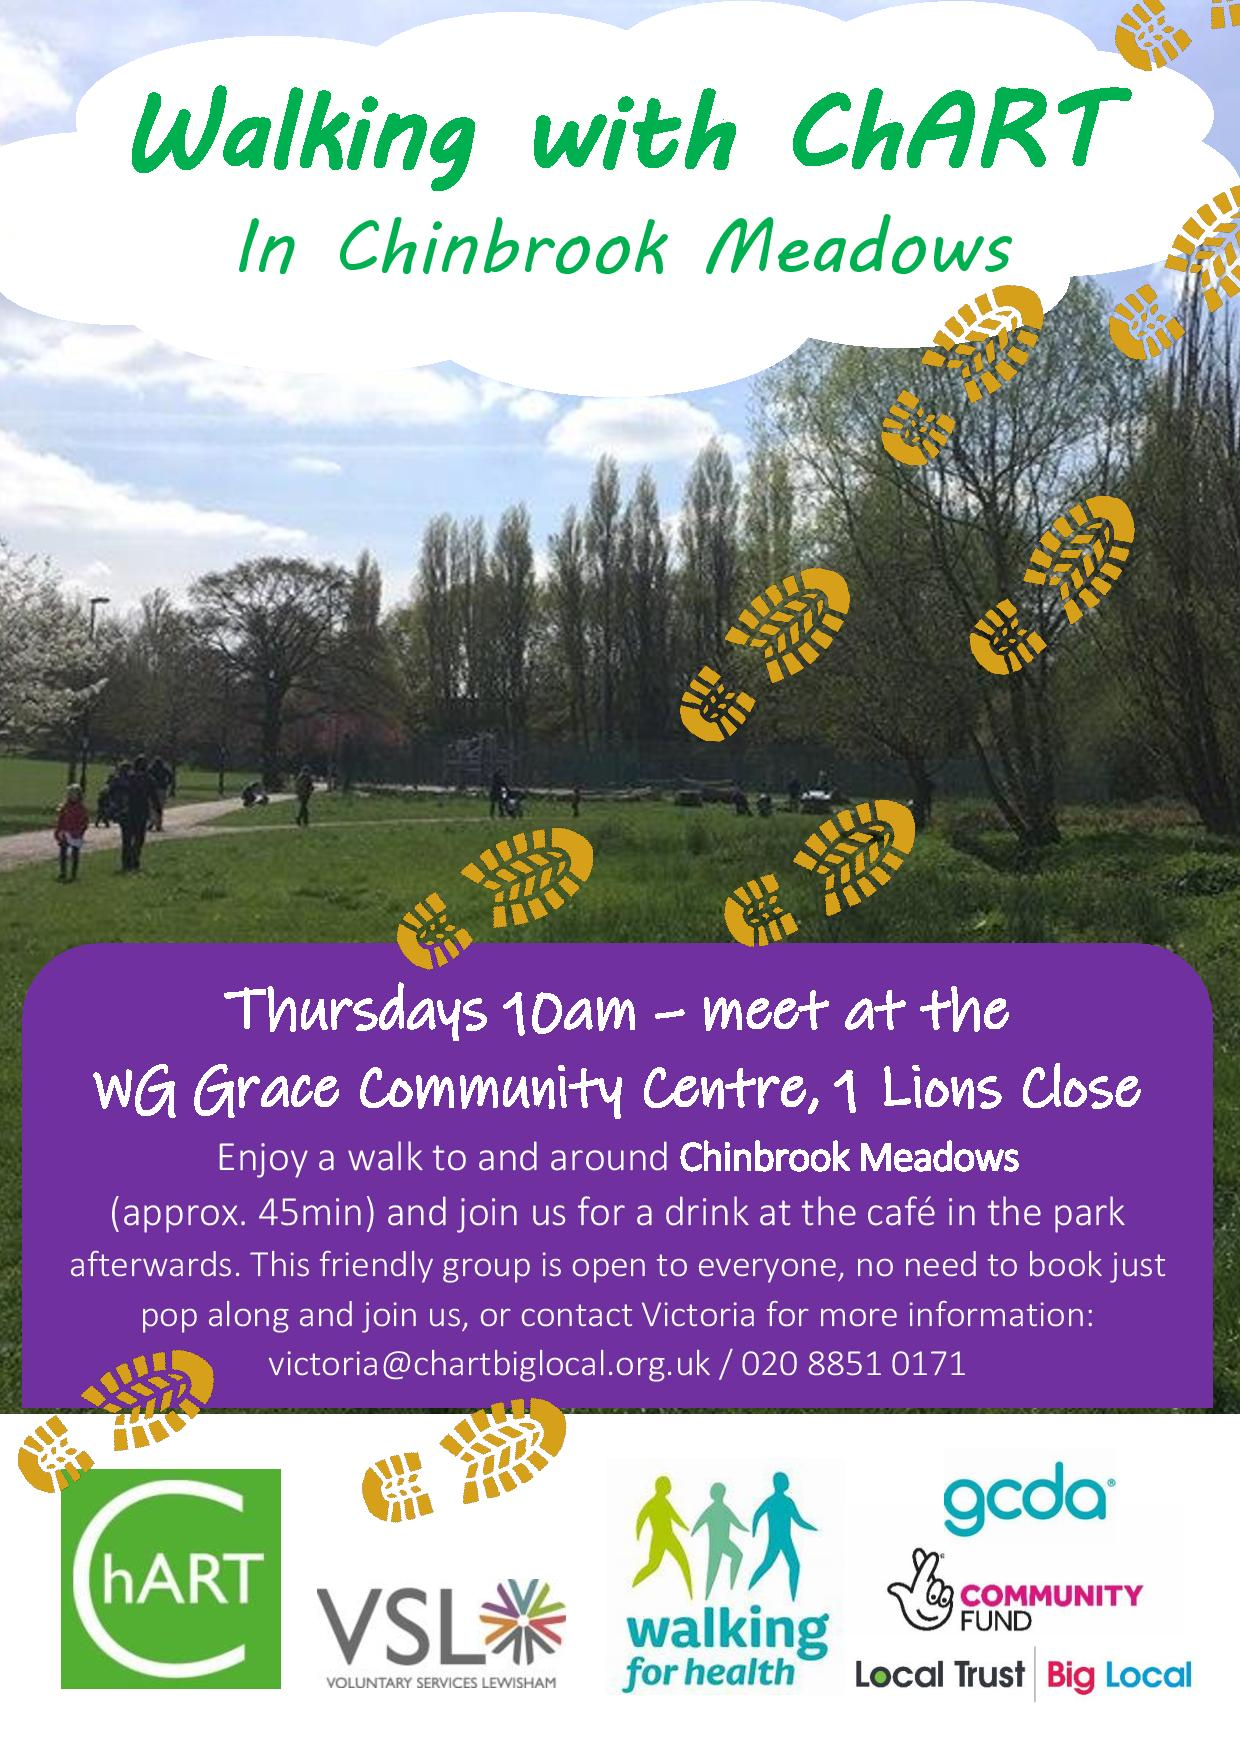 Flyer advertising ChART Walking Group background is a picture of Chinbrook Meadows, yellow boot prints appear to walk across the page, in a purple box at the base of the poster the details are give: friendly group is part of the GCDA Lewisham Healthy Walks scheme. Meets every Thursday at 10am at the WG Grace Community Centre to walk to and around Chinbrook Meadows for approx 45 min. Finishes at the cafe in the park where ChART will buy everyone drinks.